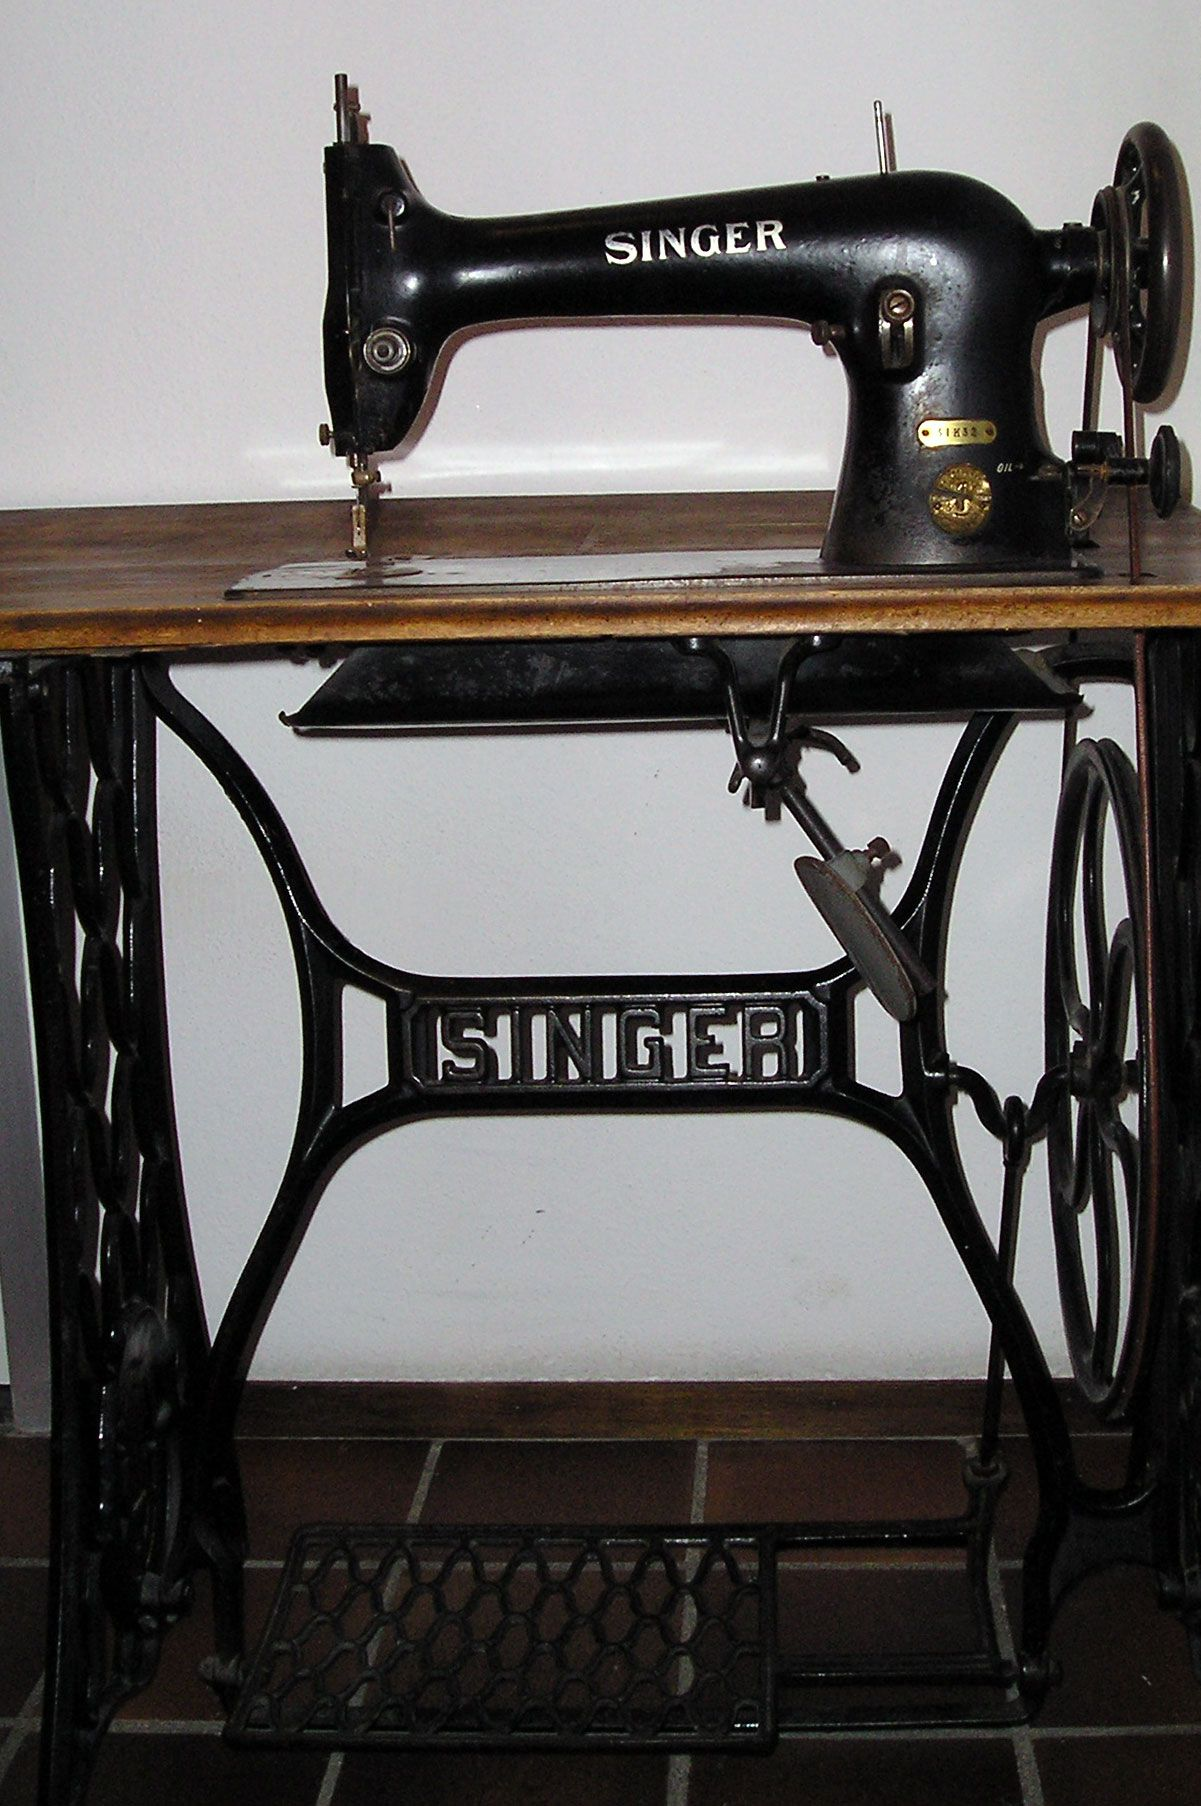 Machine coudre singer sewing pinterest coudre for Machine a coudre 60 millions